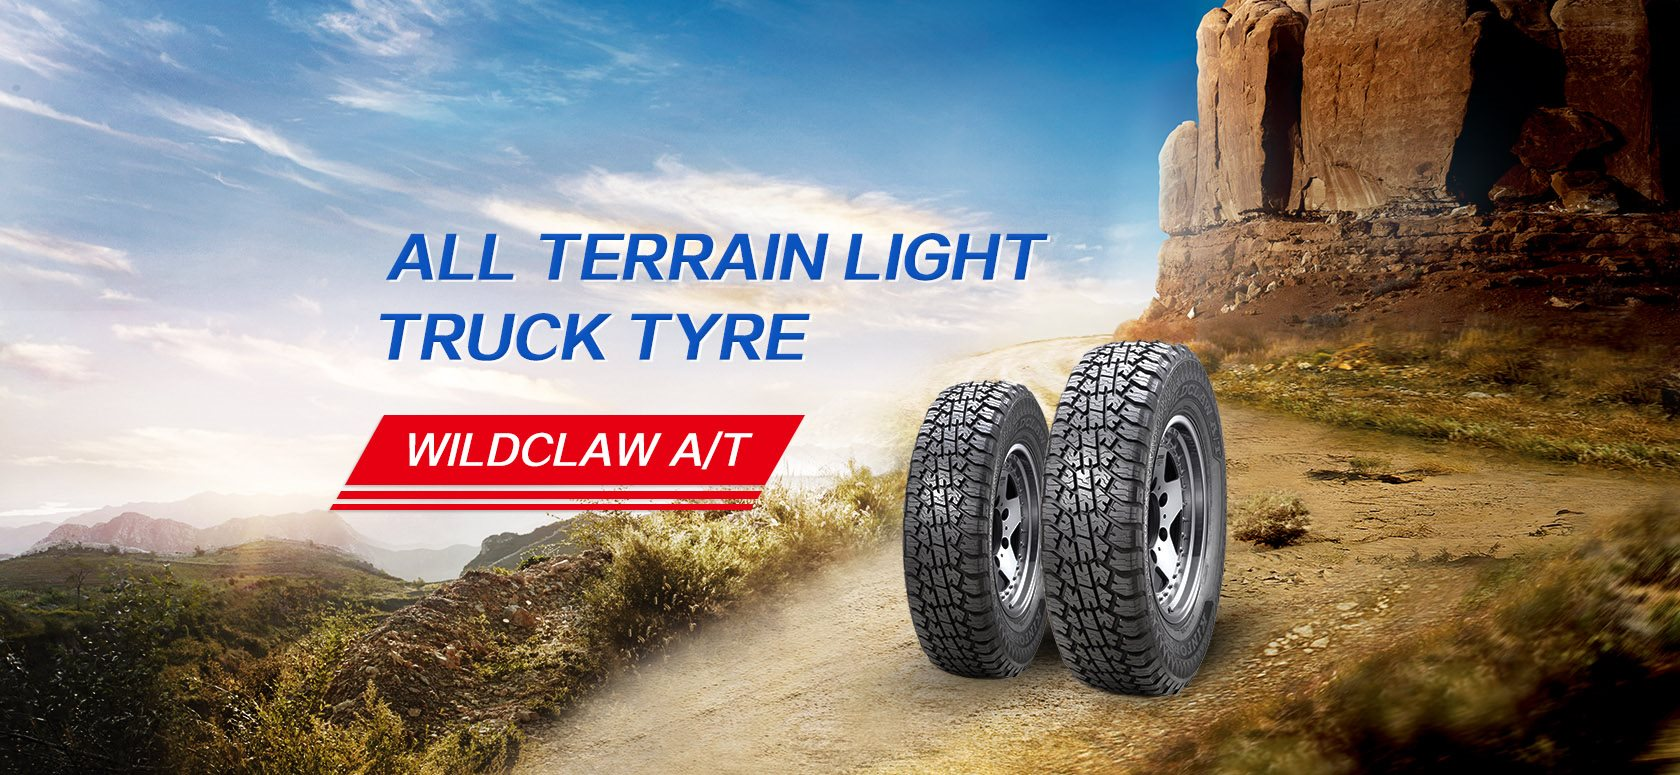 WILDCLAW A/T